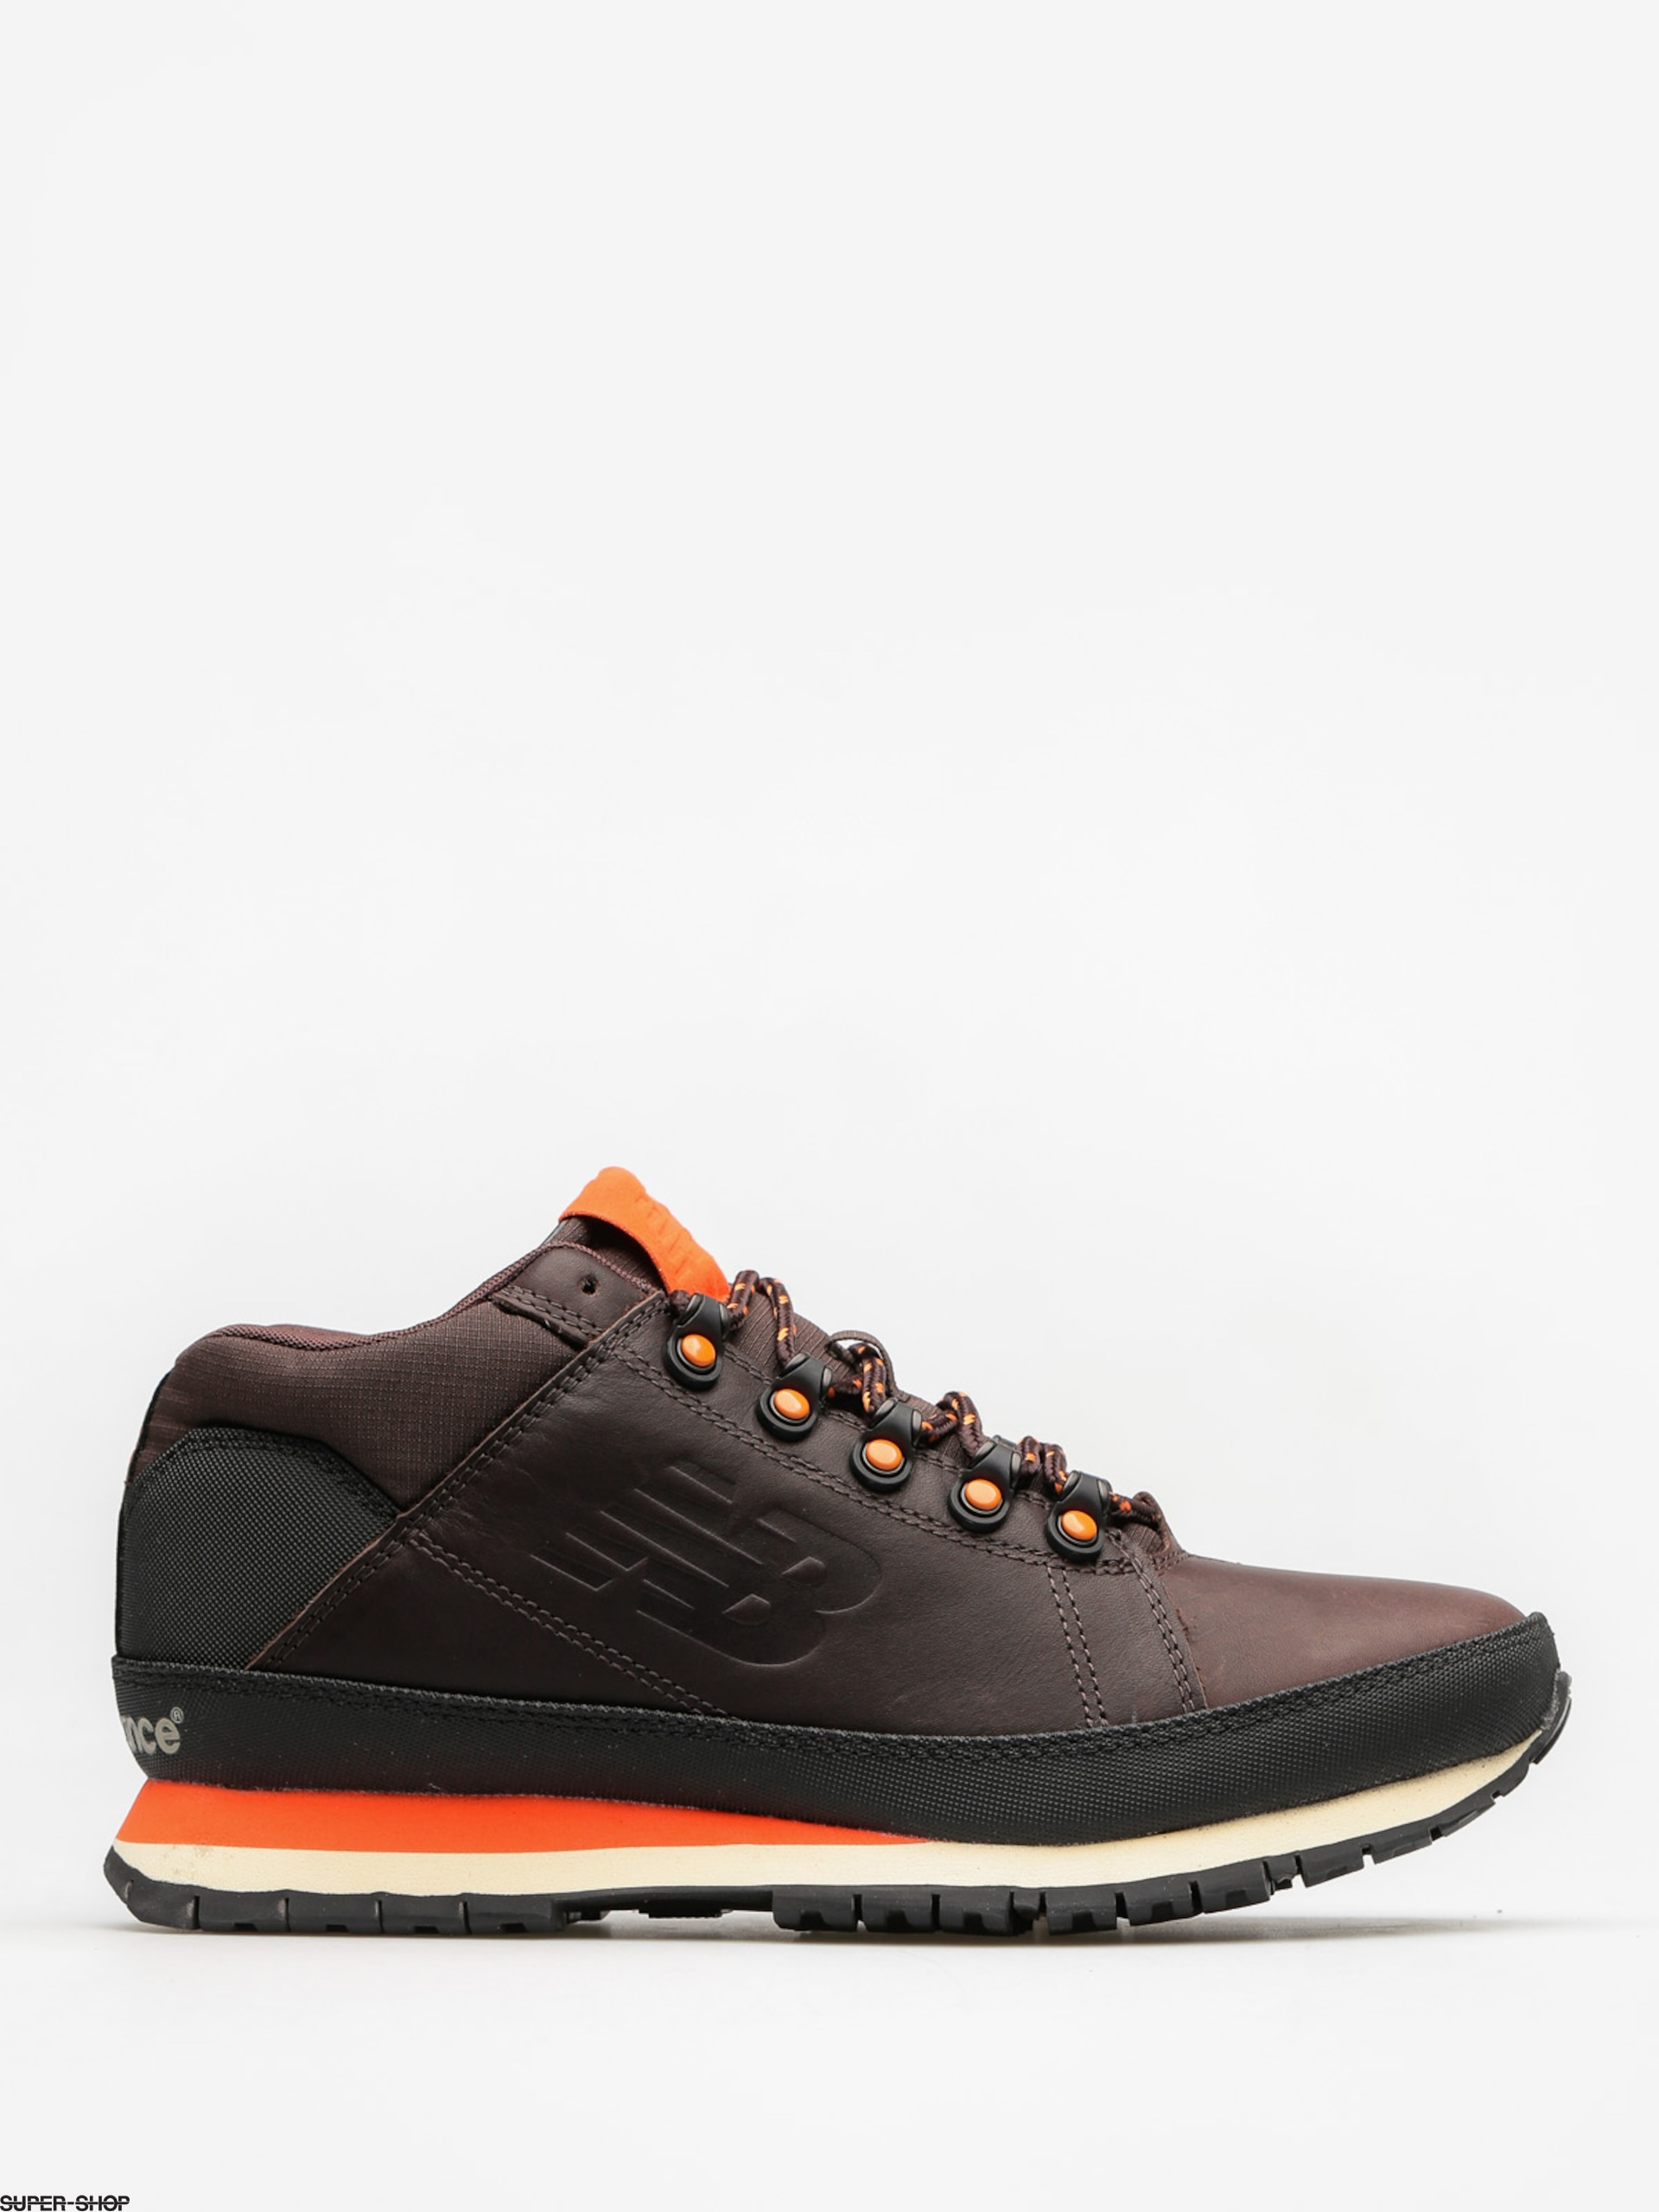 New Balance winter shoes 754 (bo)